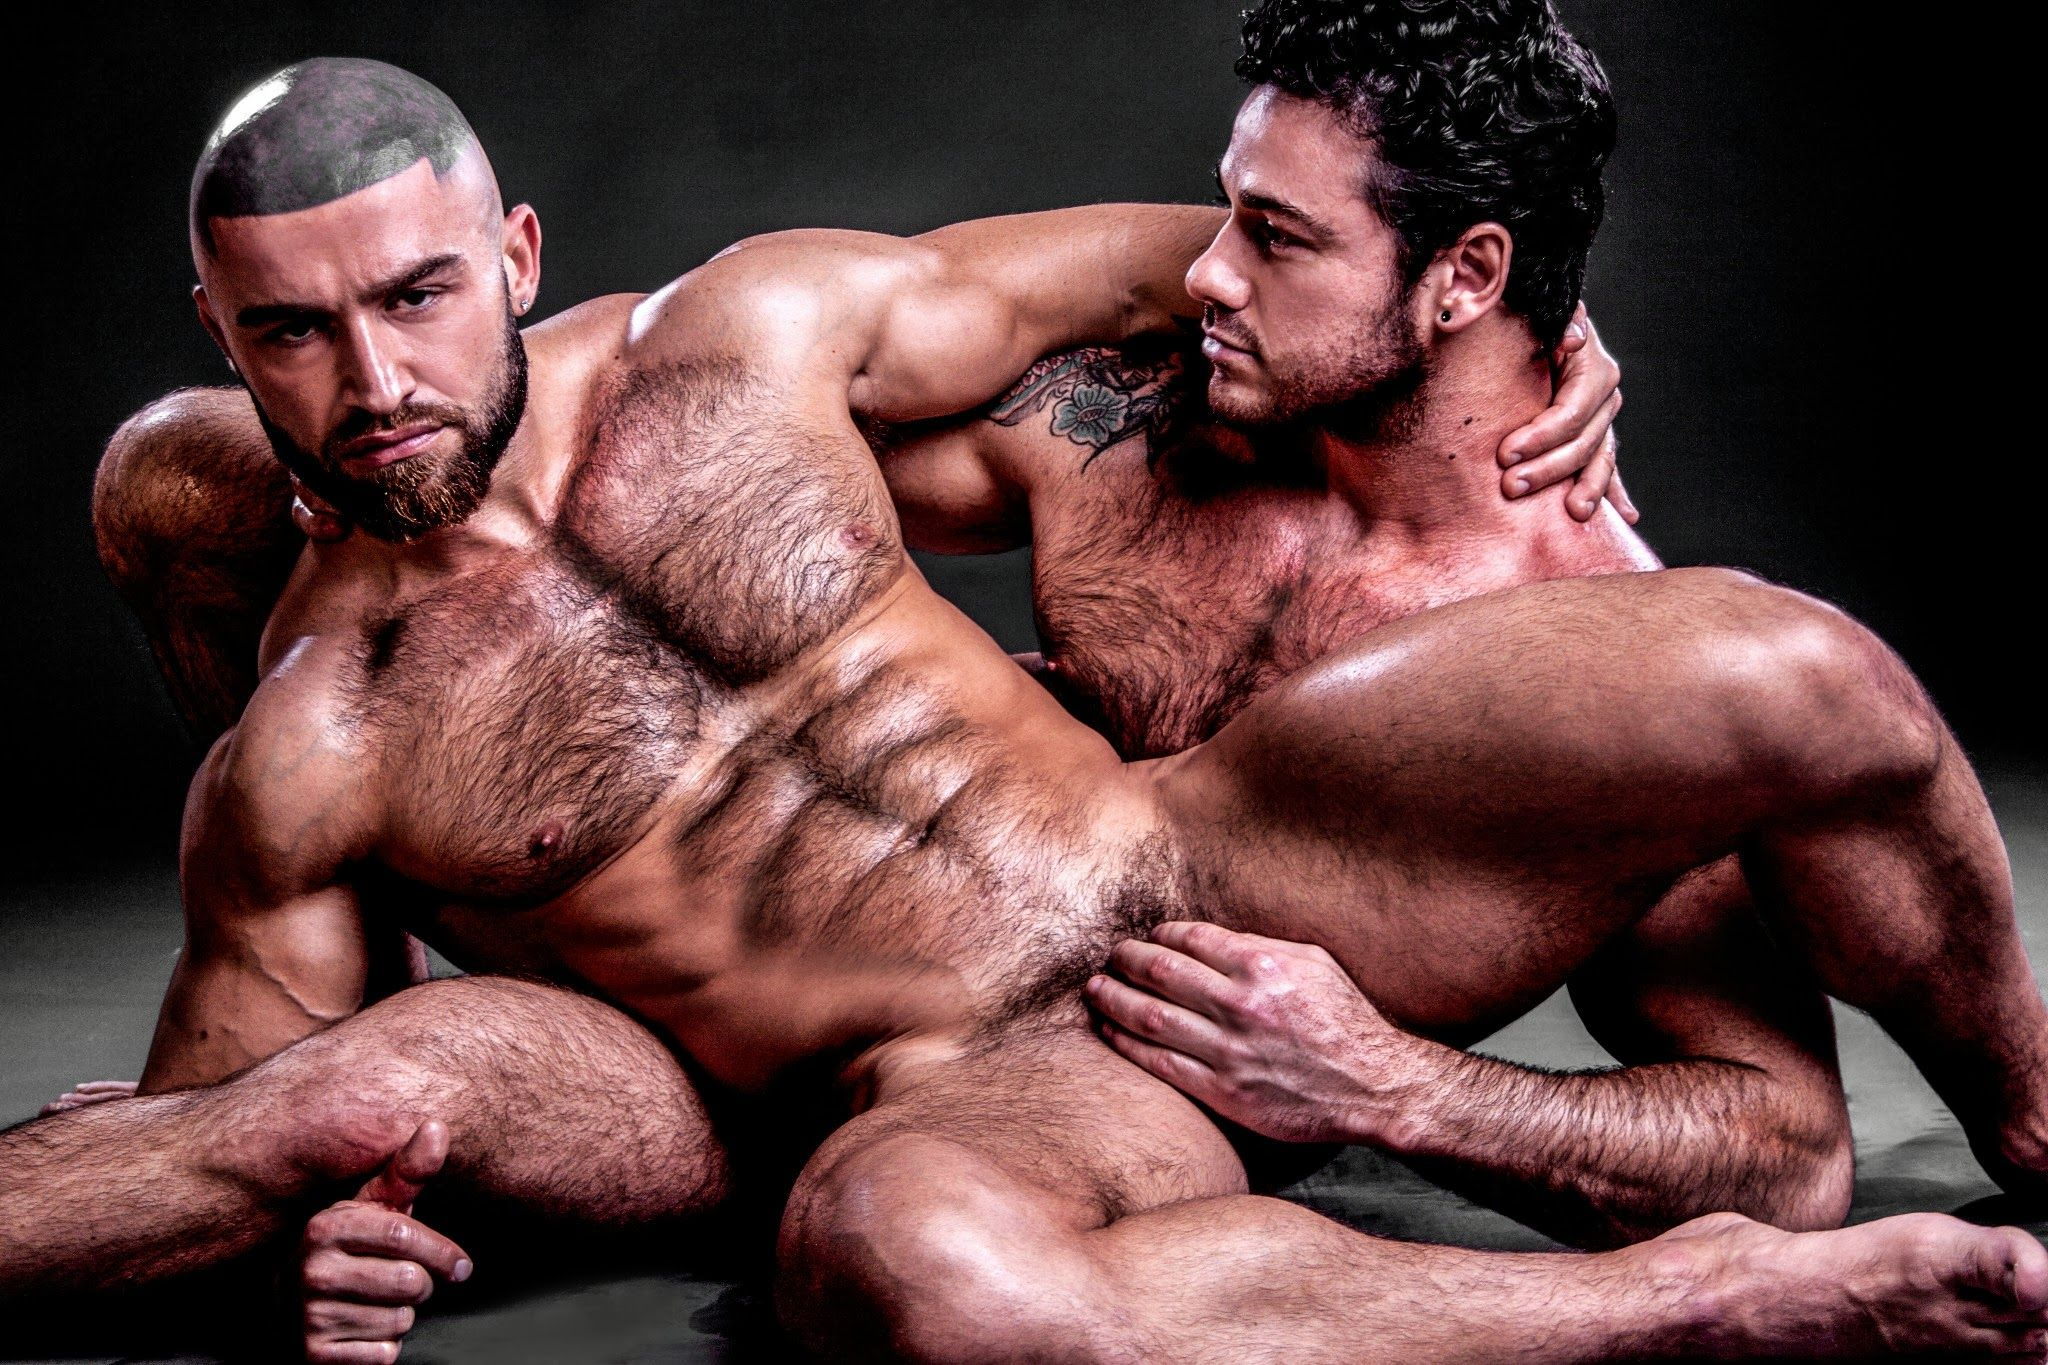 and jonathan best Francois sagat